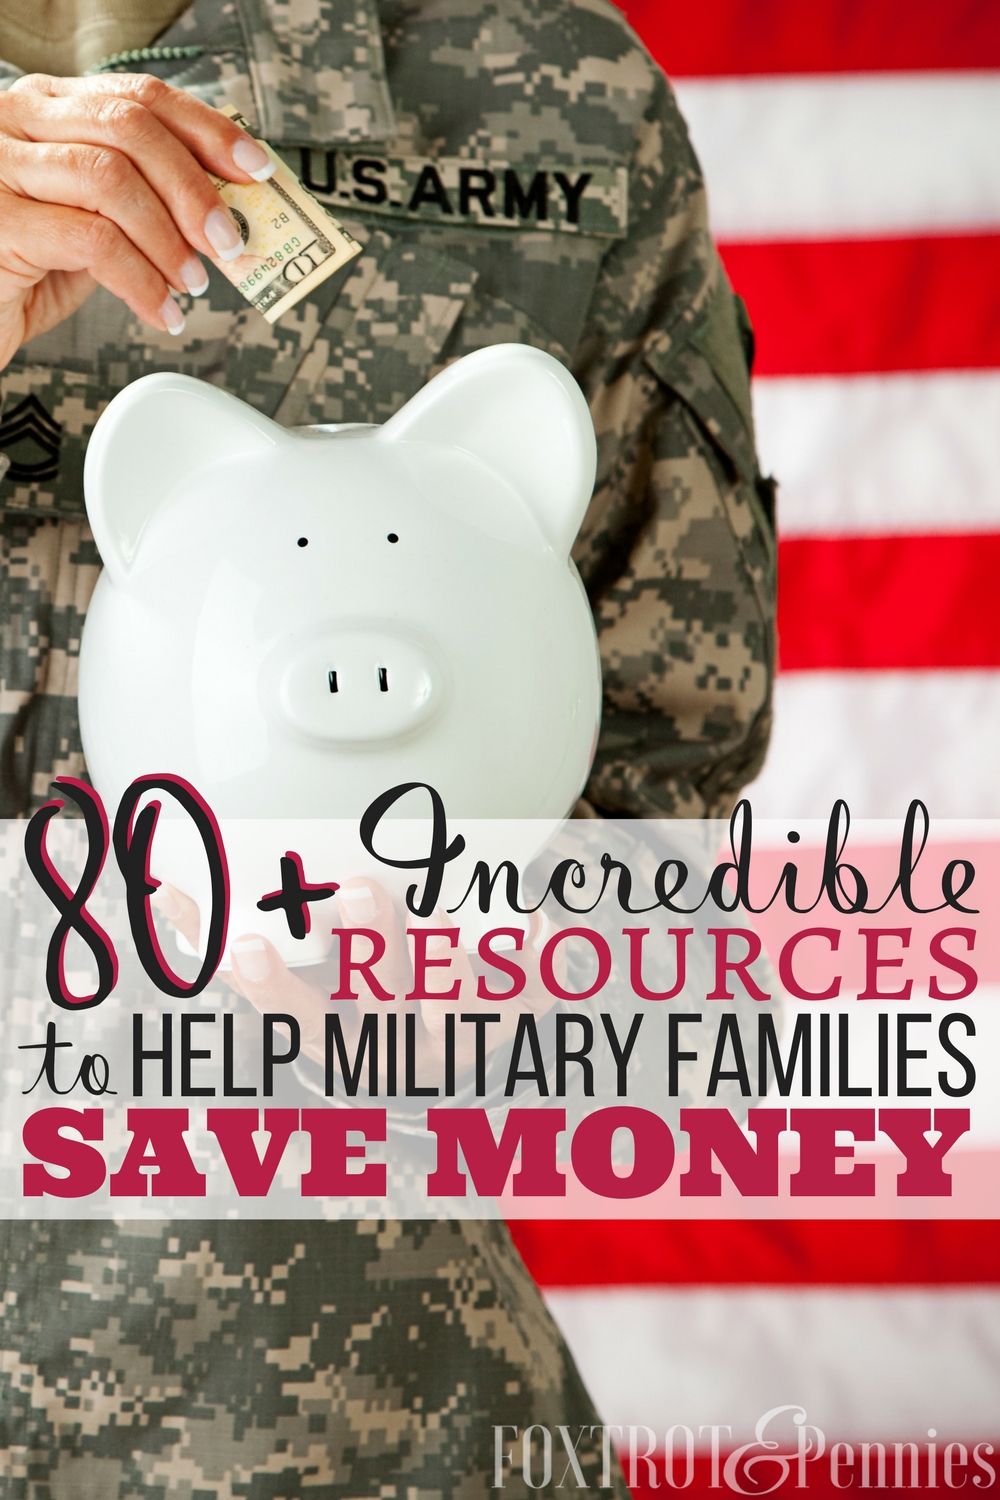 Wow this list is awesome! There are so many resources and ways for military families to save money! If you are looking to save money on groceries, work on budgeting, meal planning, couponing, or just want general information specific to military families then this is a list you need to bookmark!